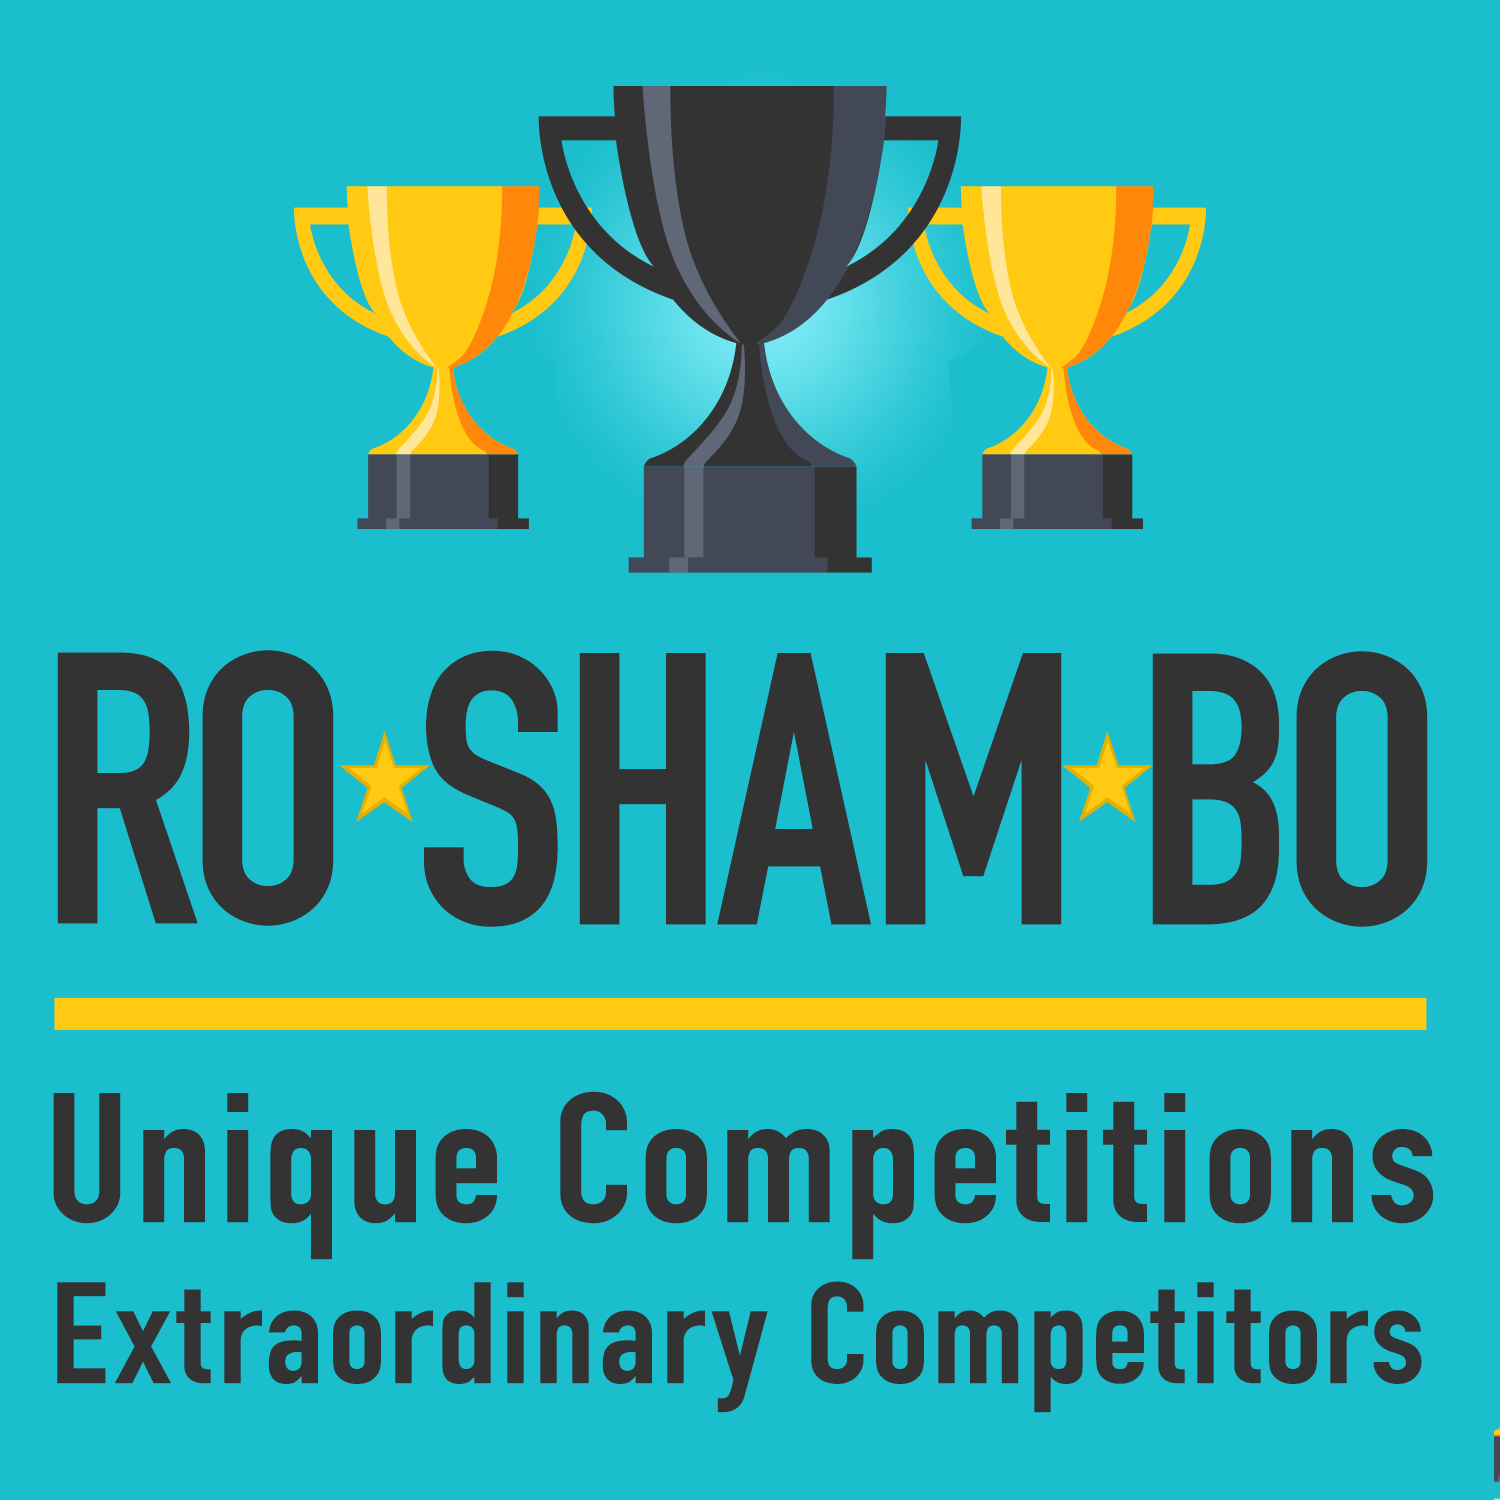 RoShamBo : Unique Competitions, Extraordinary Competitors